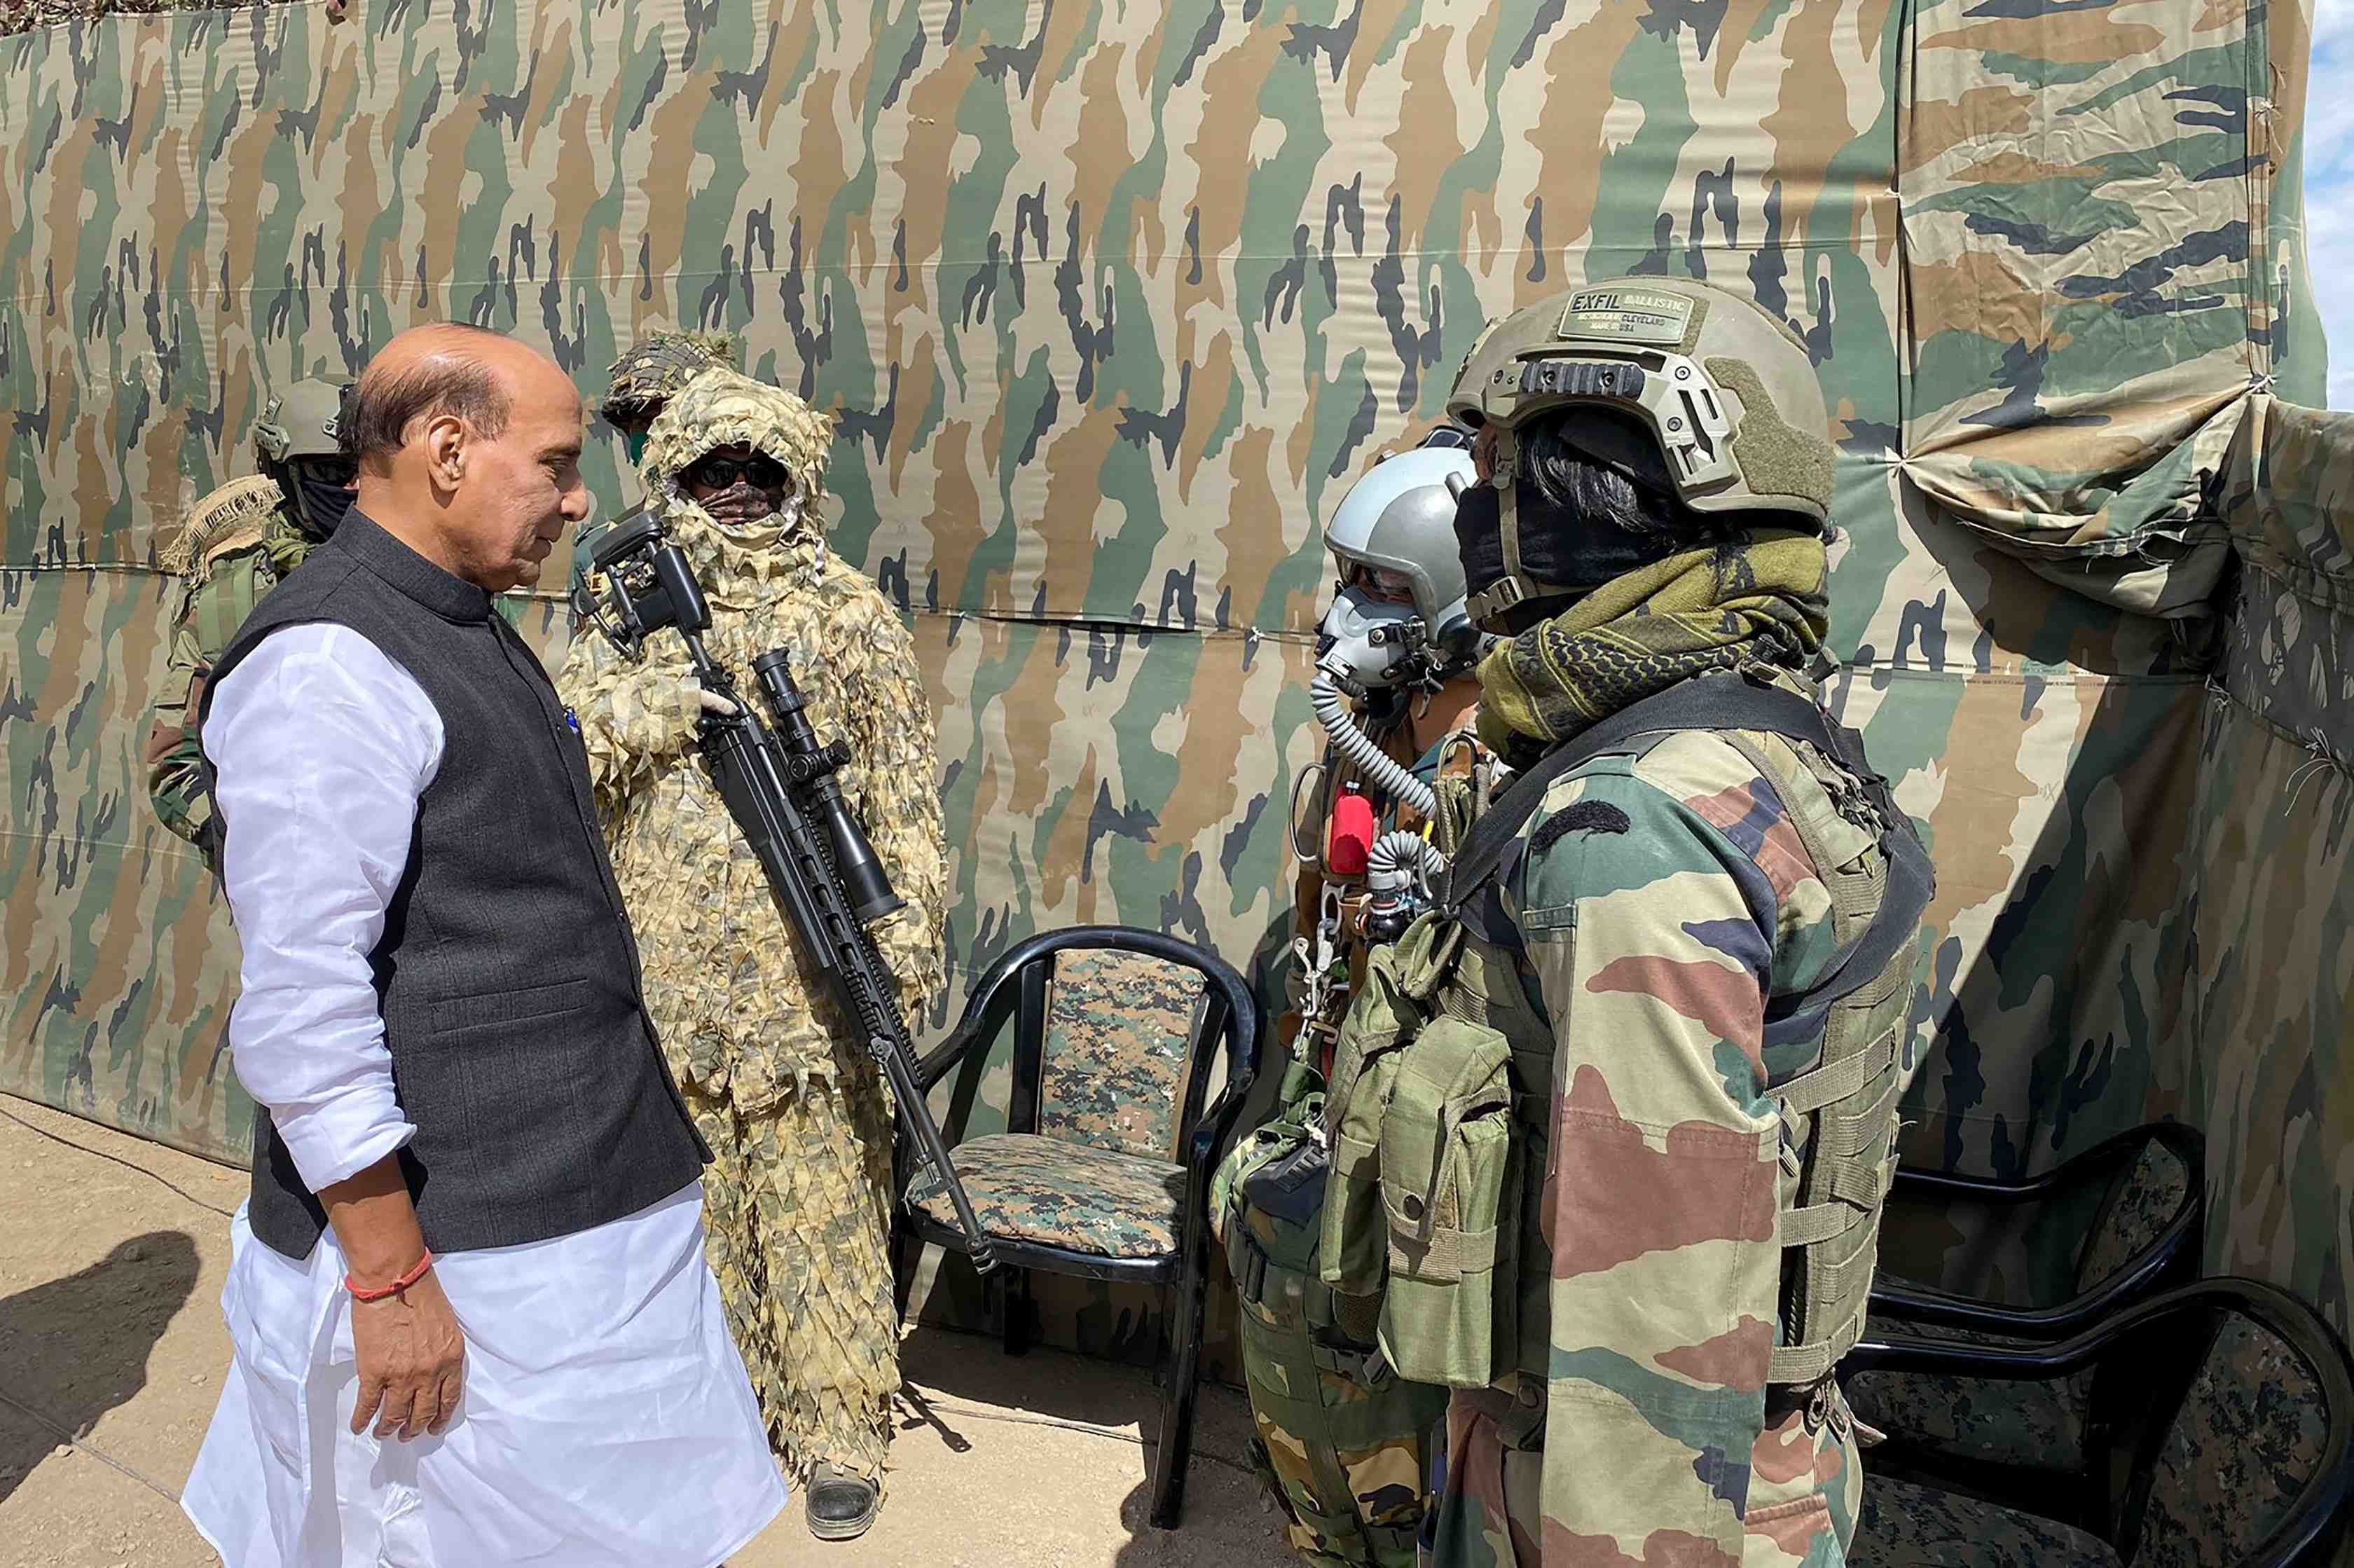 Defence minister Rajnath Singh interacts with the troops who participated in the para dropping and other military exercise at Stakna, in Leh, Ladakh, Friday, July 17, 2020